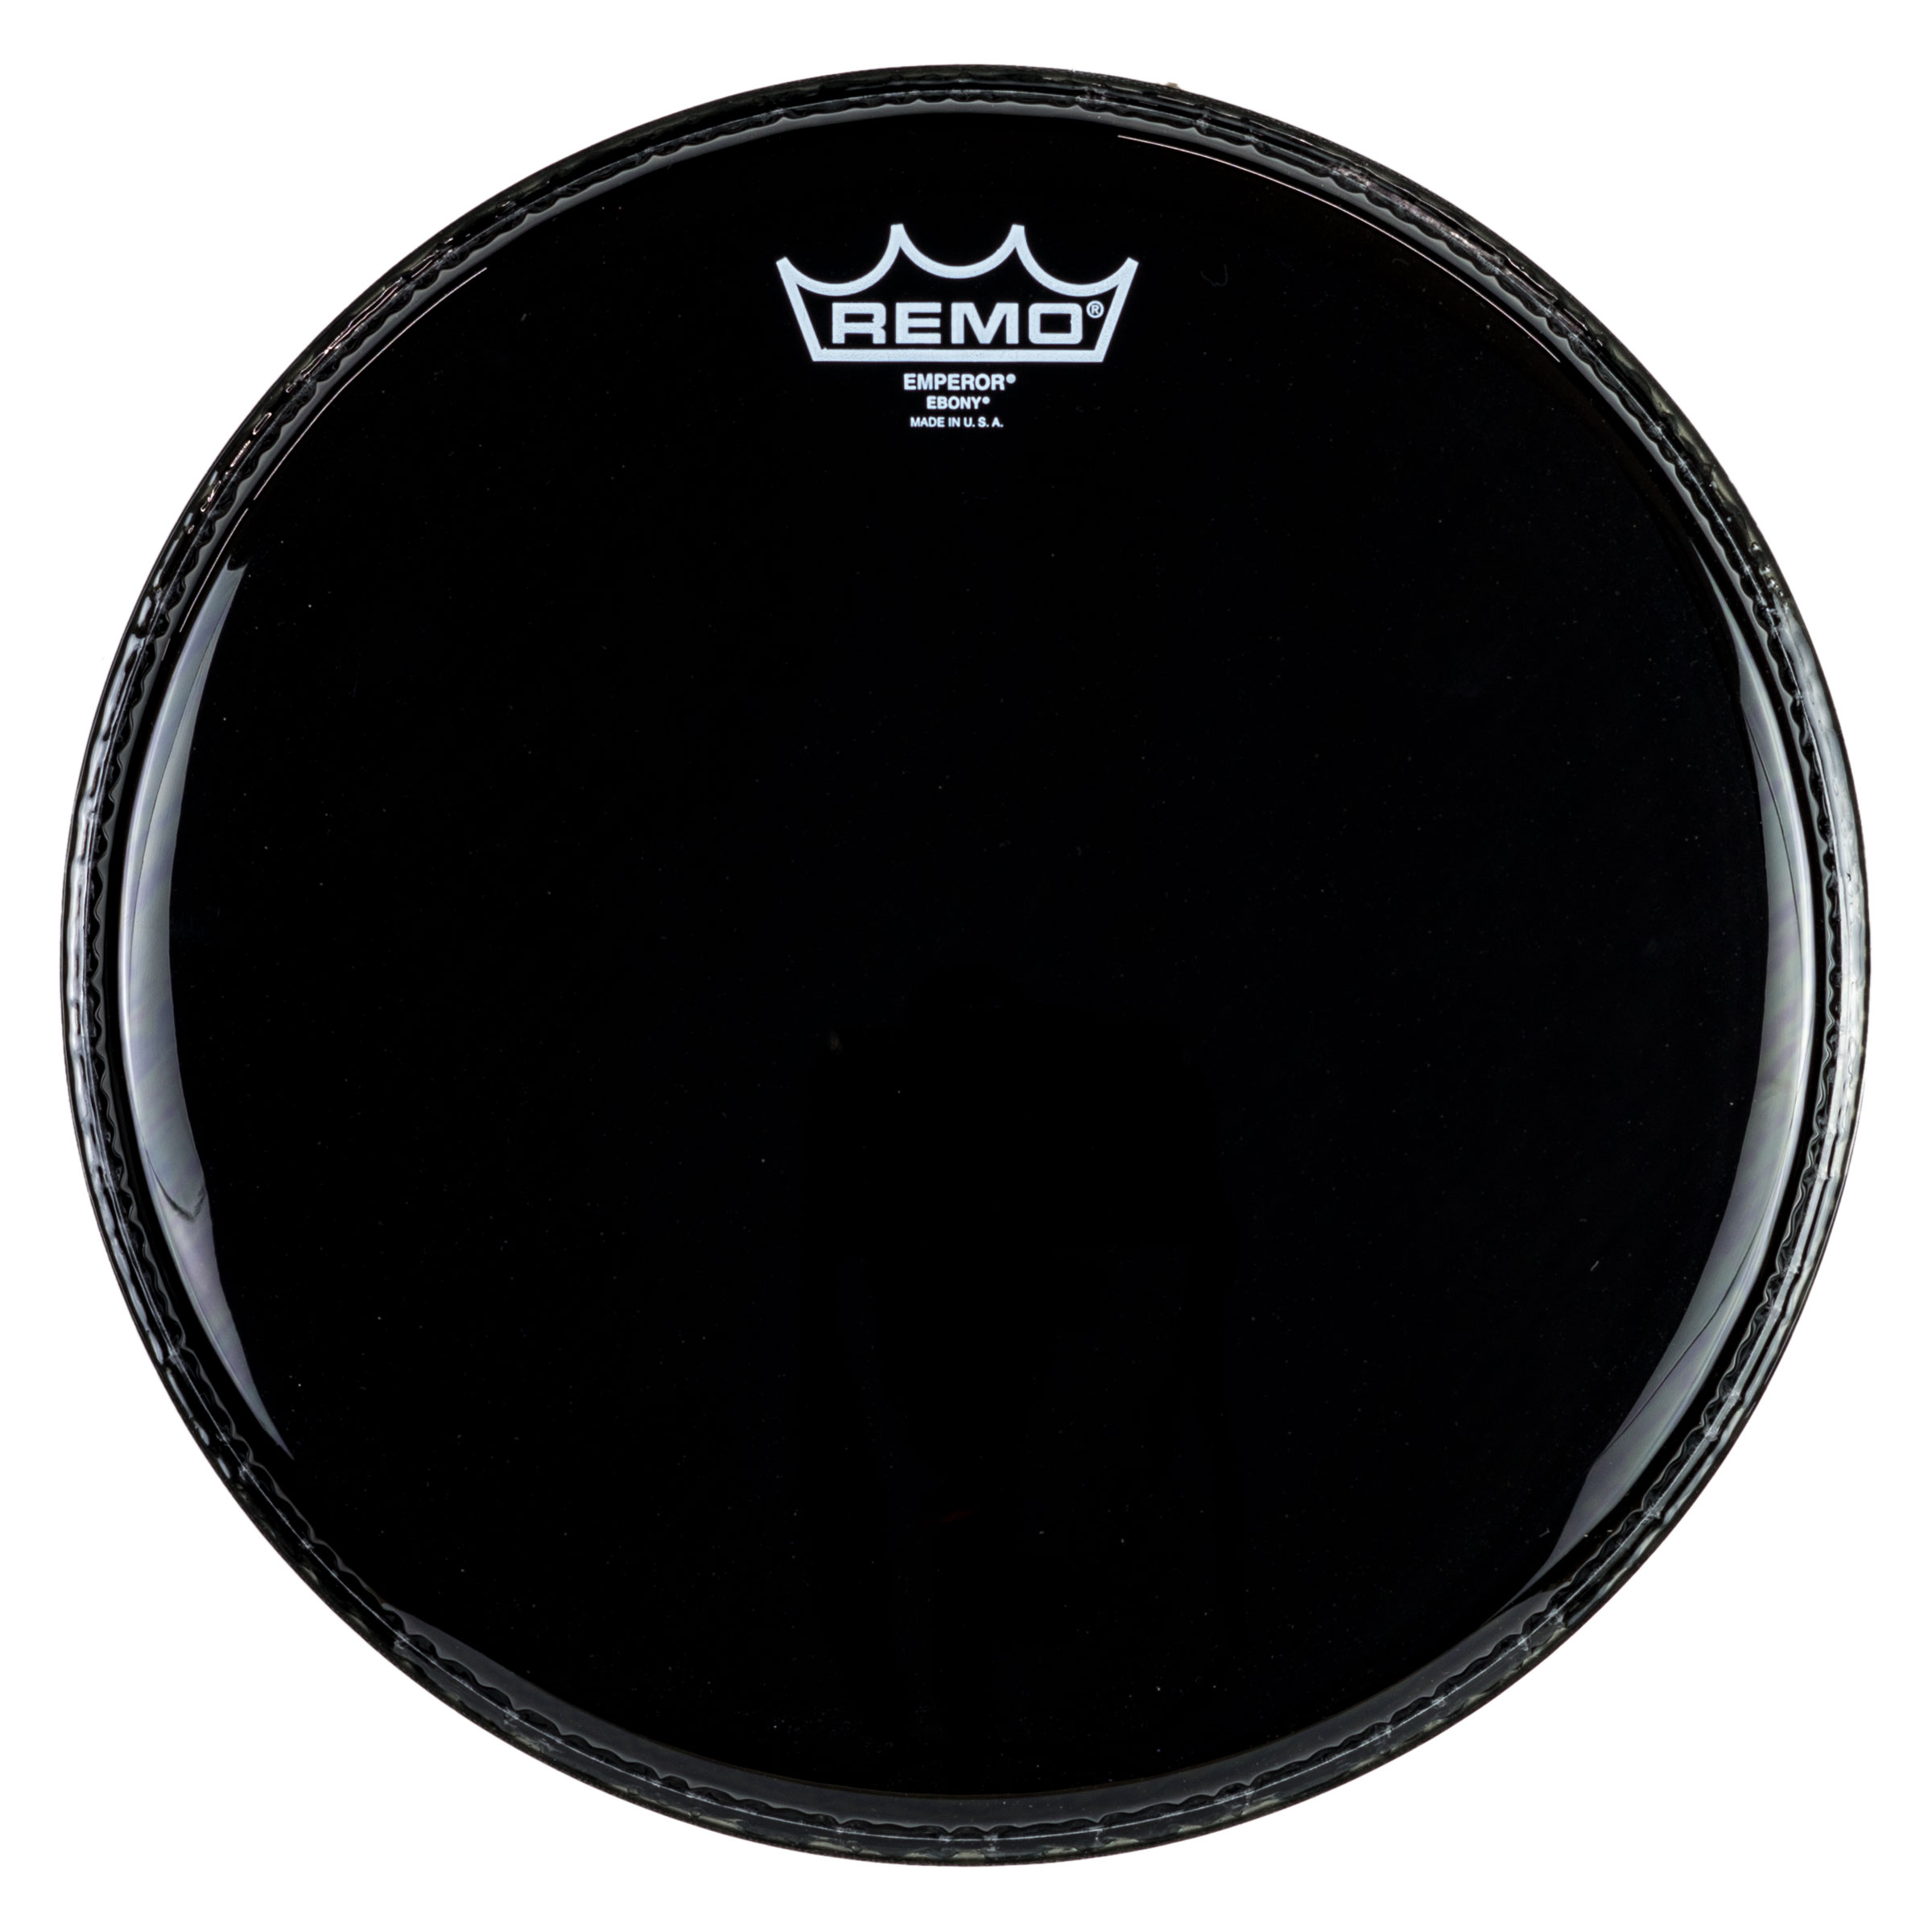 "Remo 13"" Emperor Ebony Drum Head"